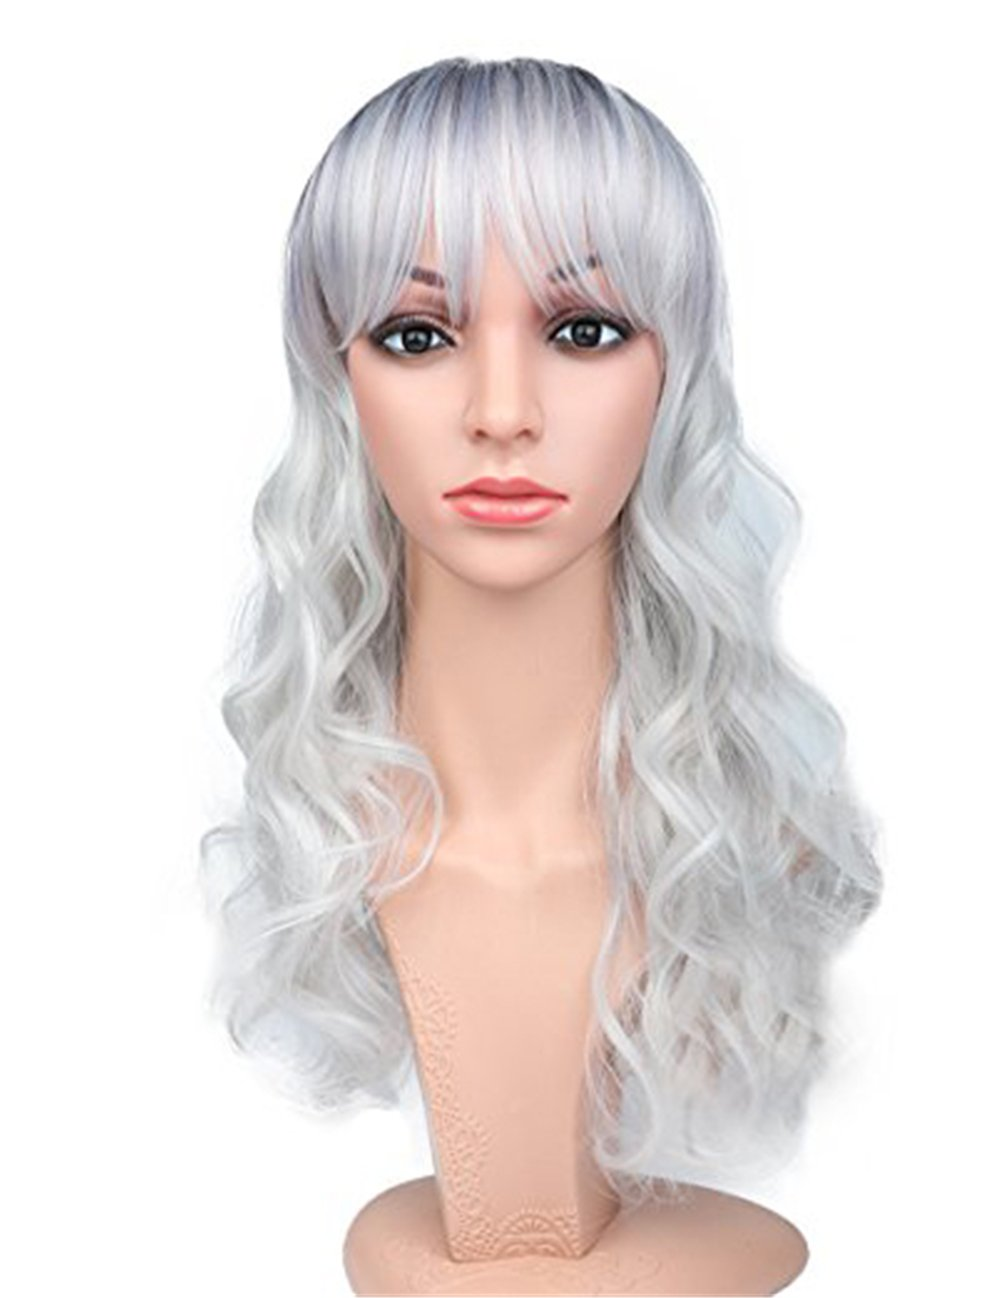 Fani Cosplay Wig Long Body Wave Curly Wig Side Bangs Wig With Free Wig Cap Two Tone Black and Grey Ombre Wig Synthetic Wigs